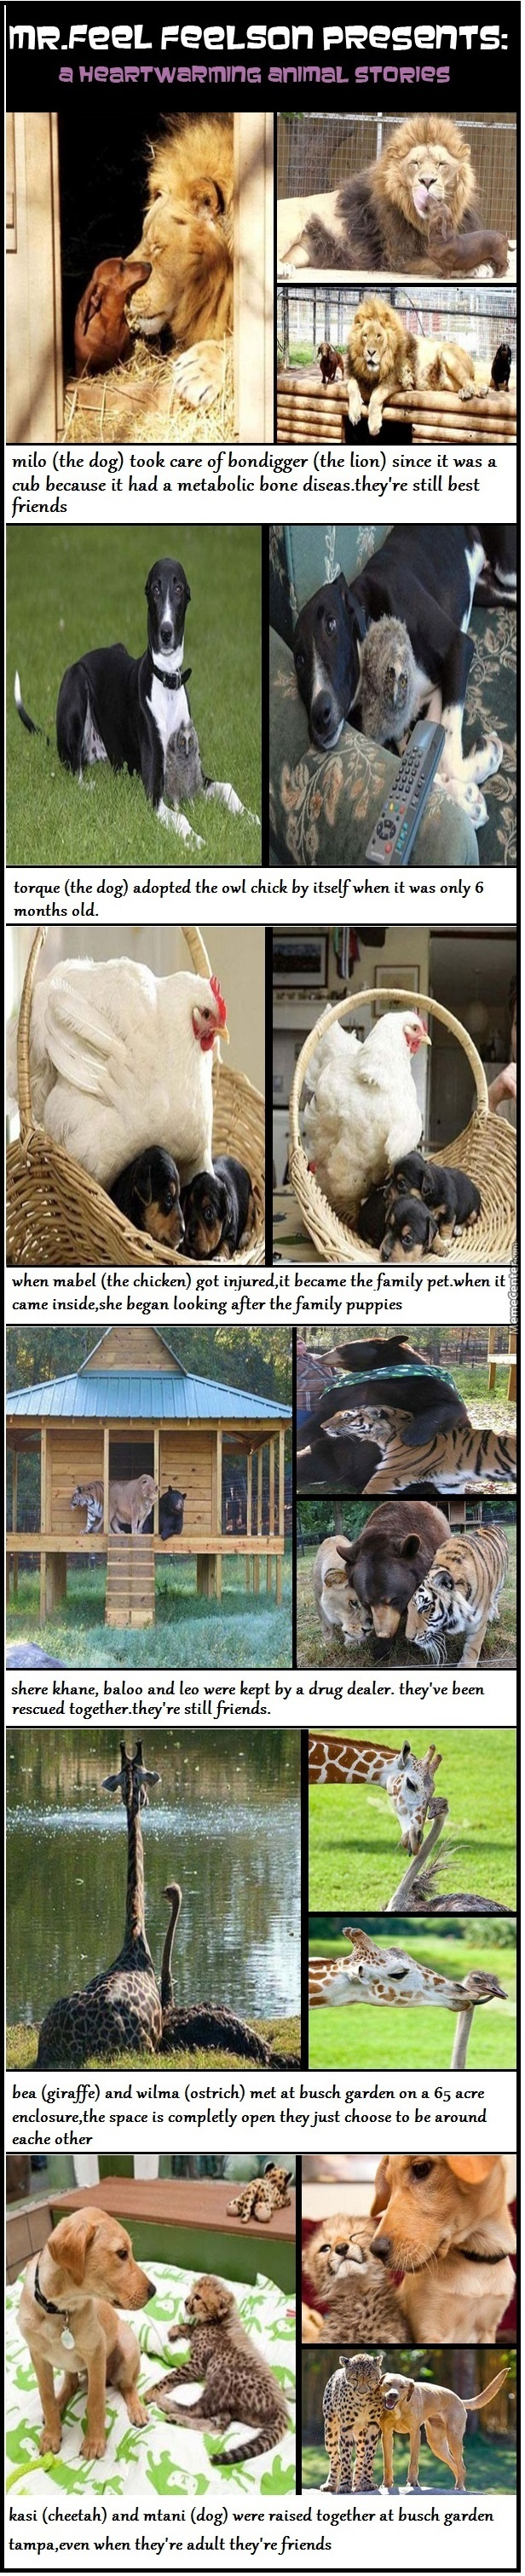 Heartwarming Animal Stories